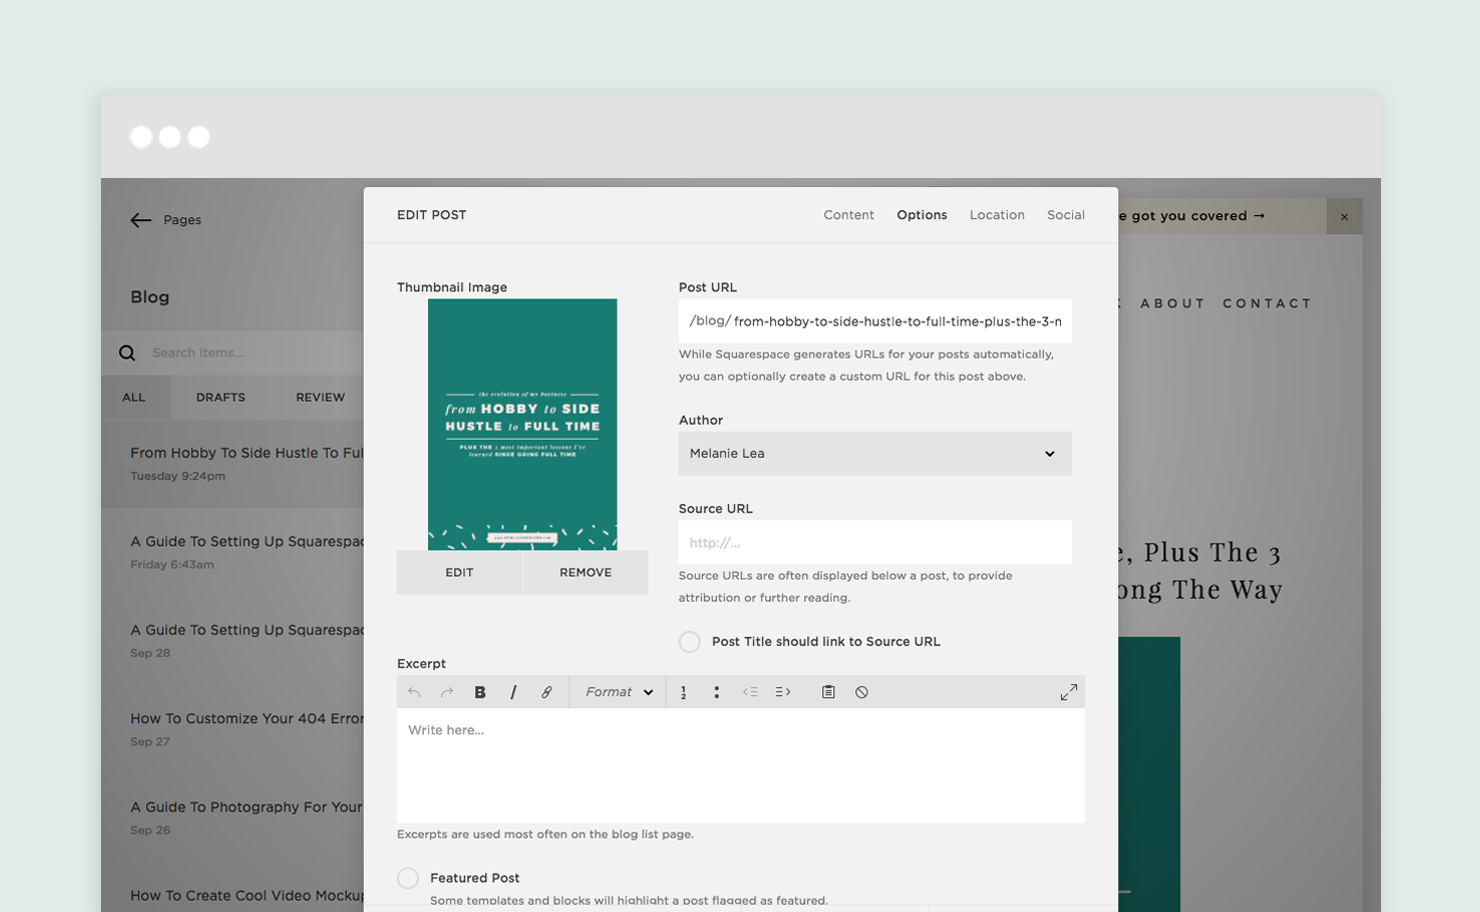 Blog post options panel in Squarespace explained